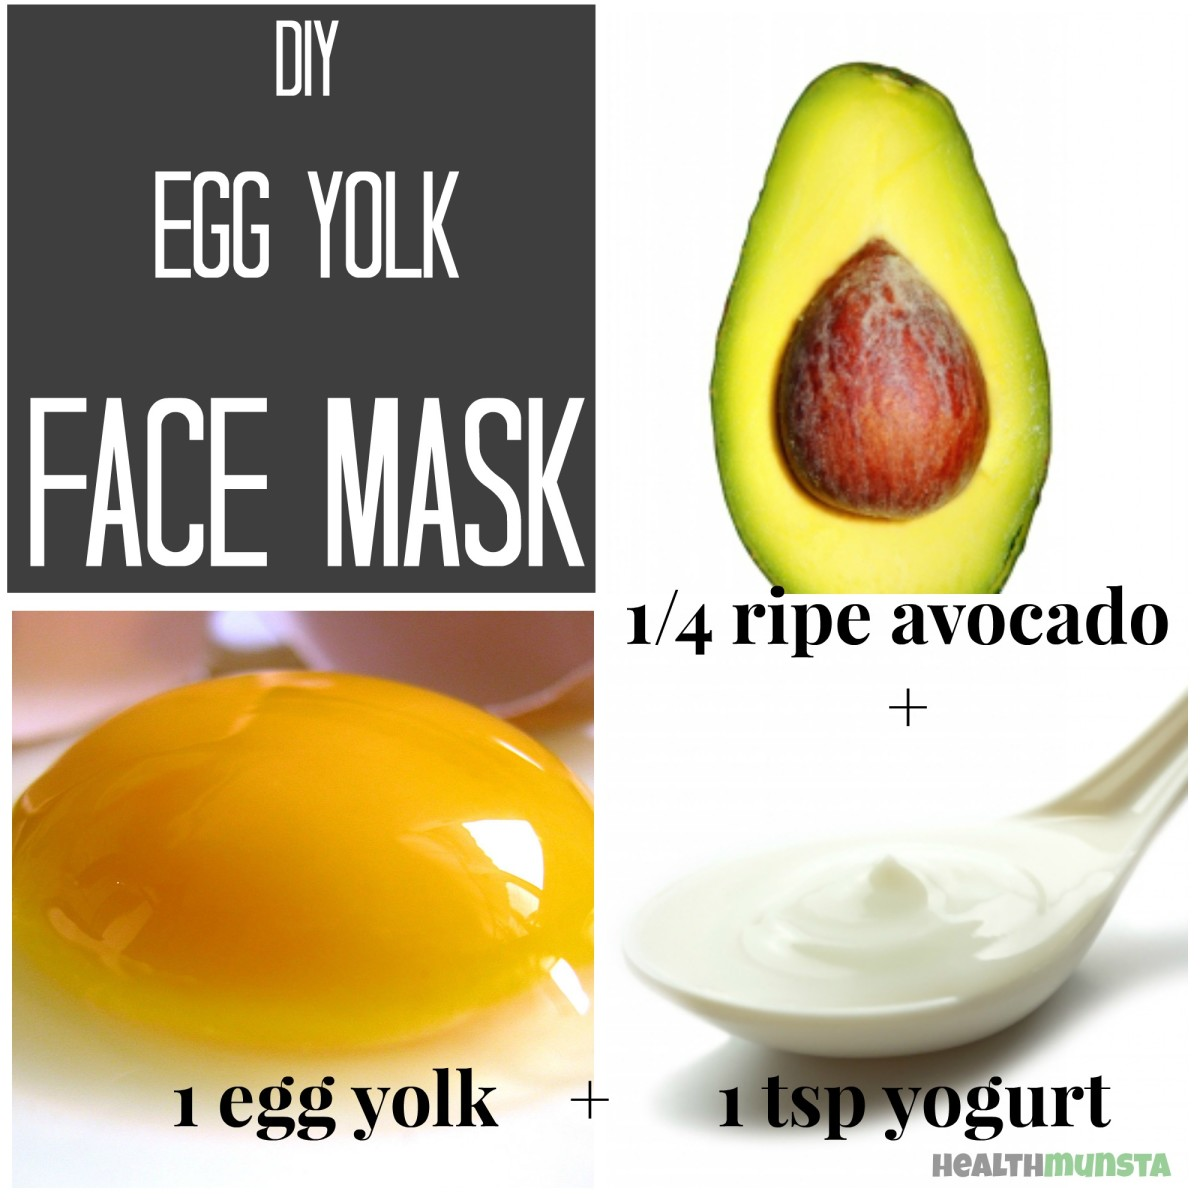 Nourishing egg yolk face mask for all skin types with avocado and yogurt.